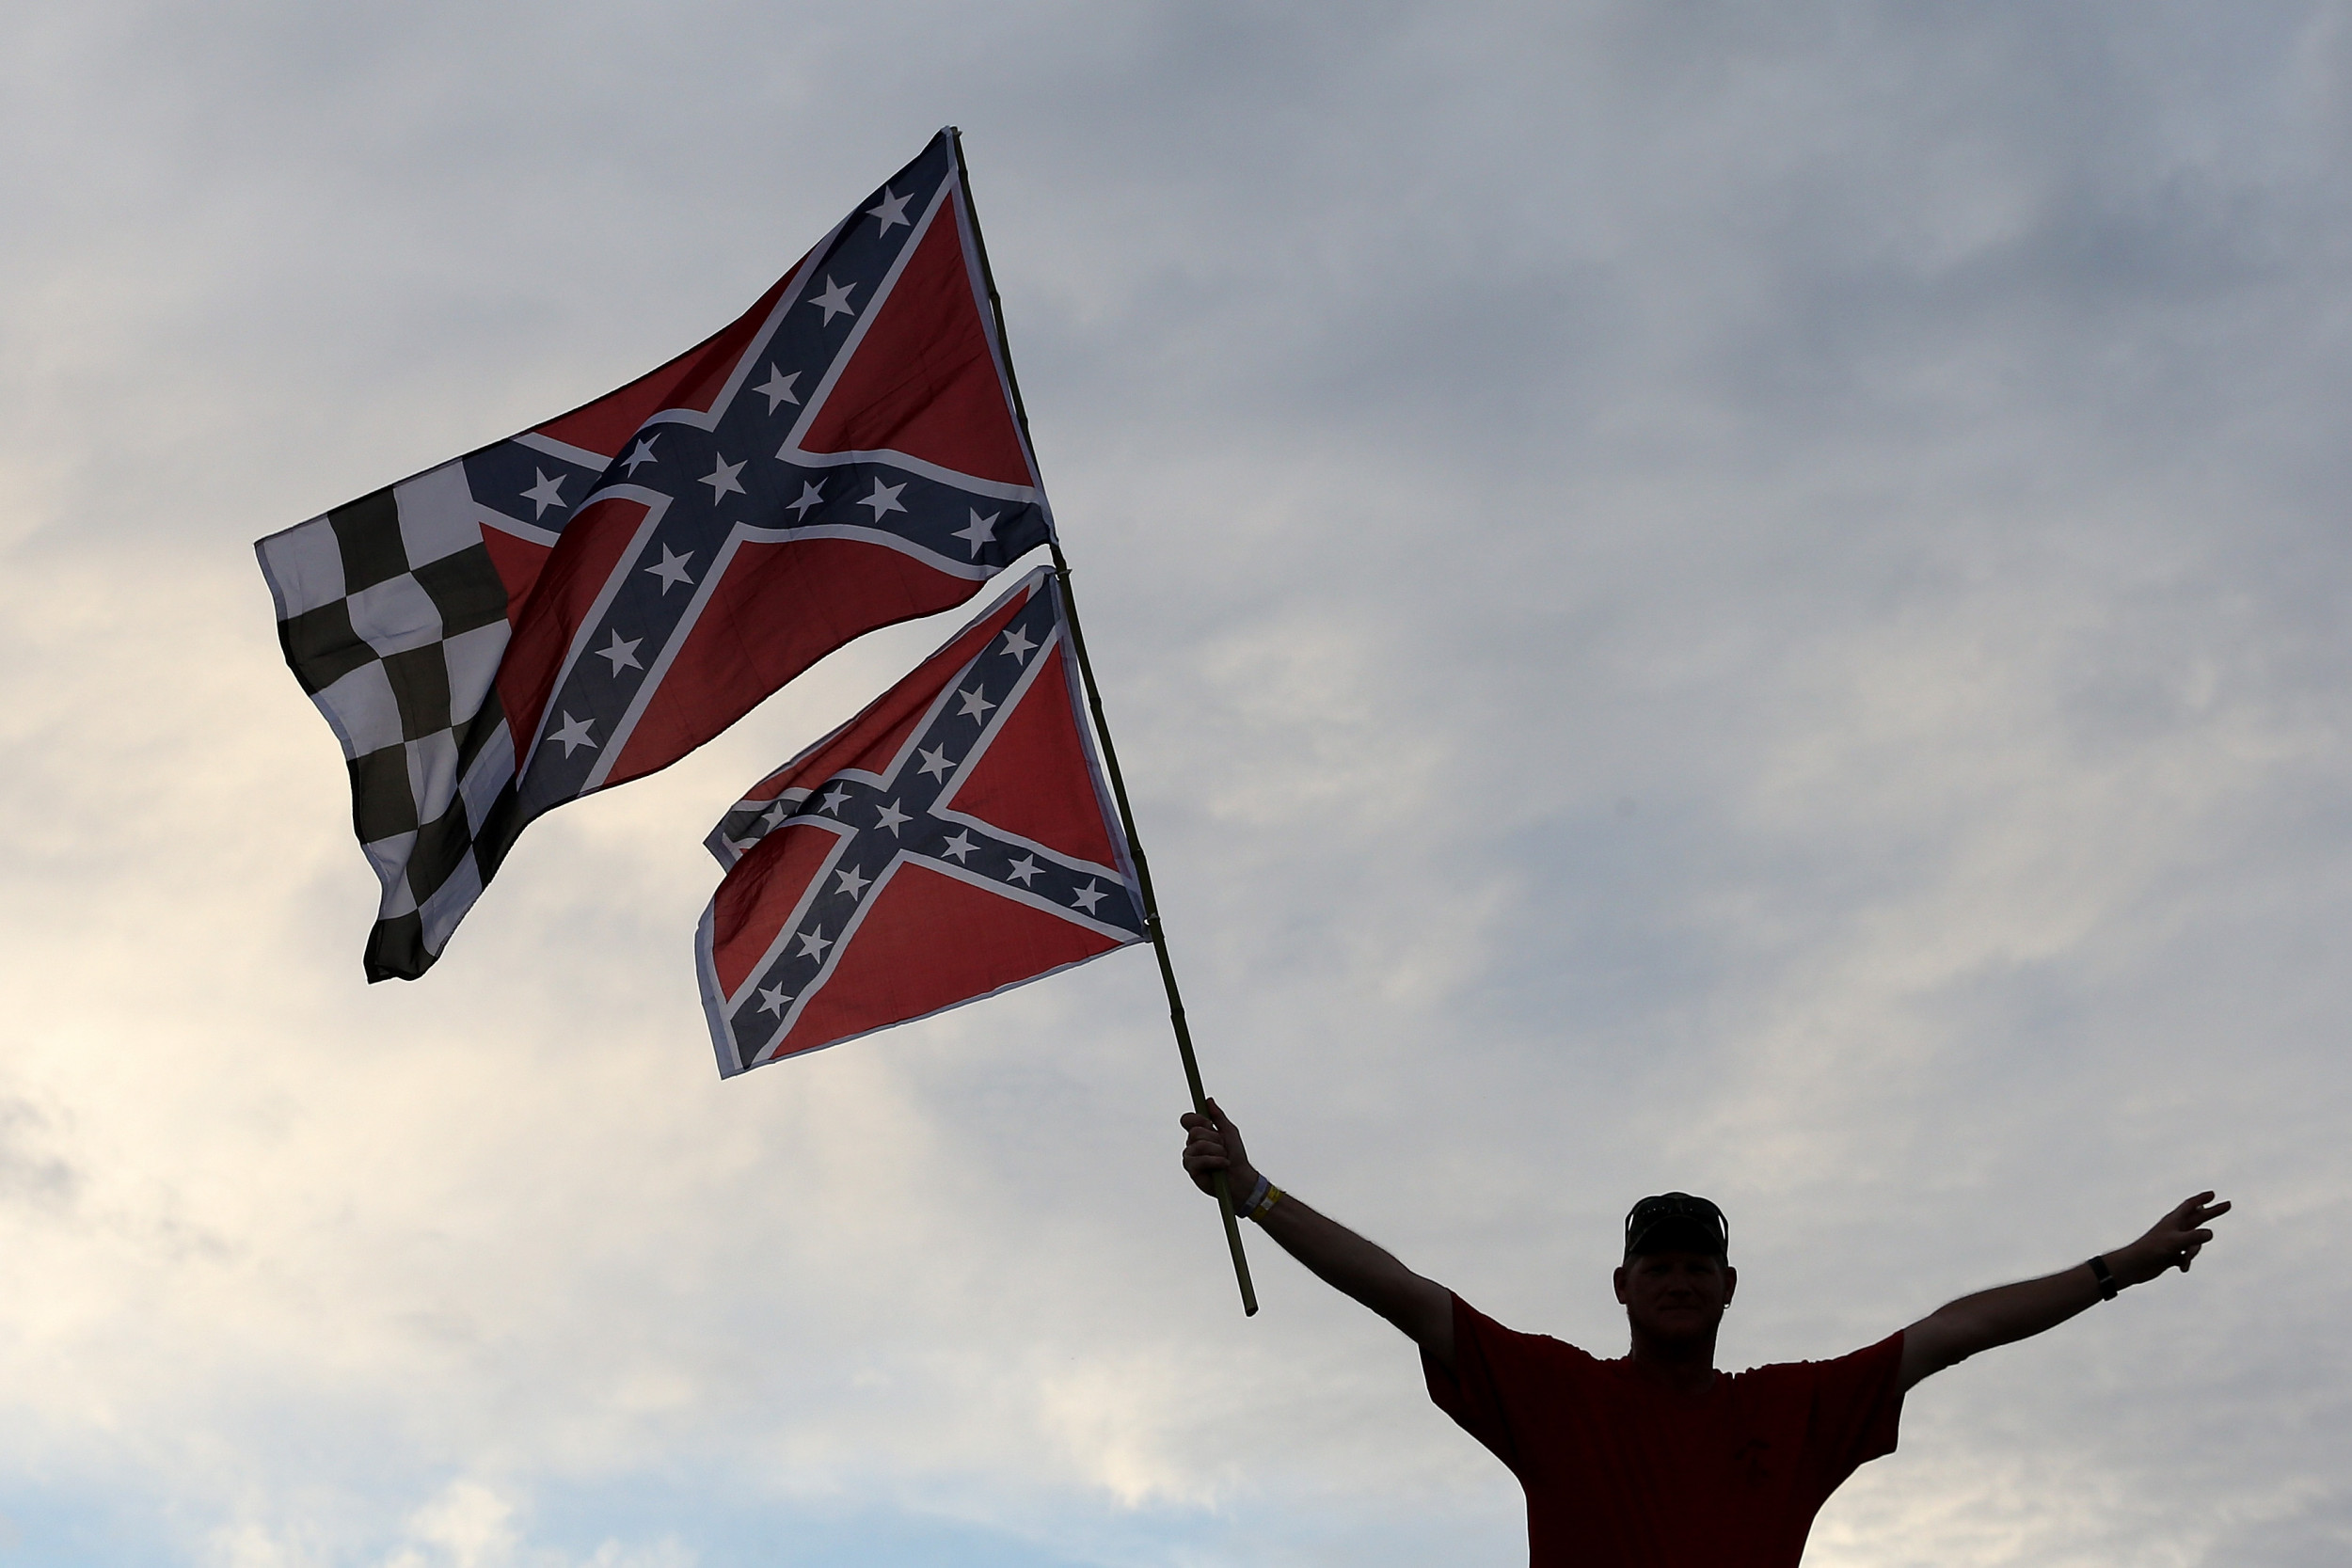 Confederate flag flies over NASCAR All-Star race in defiance of ban